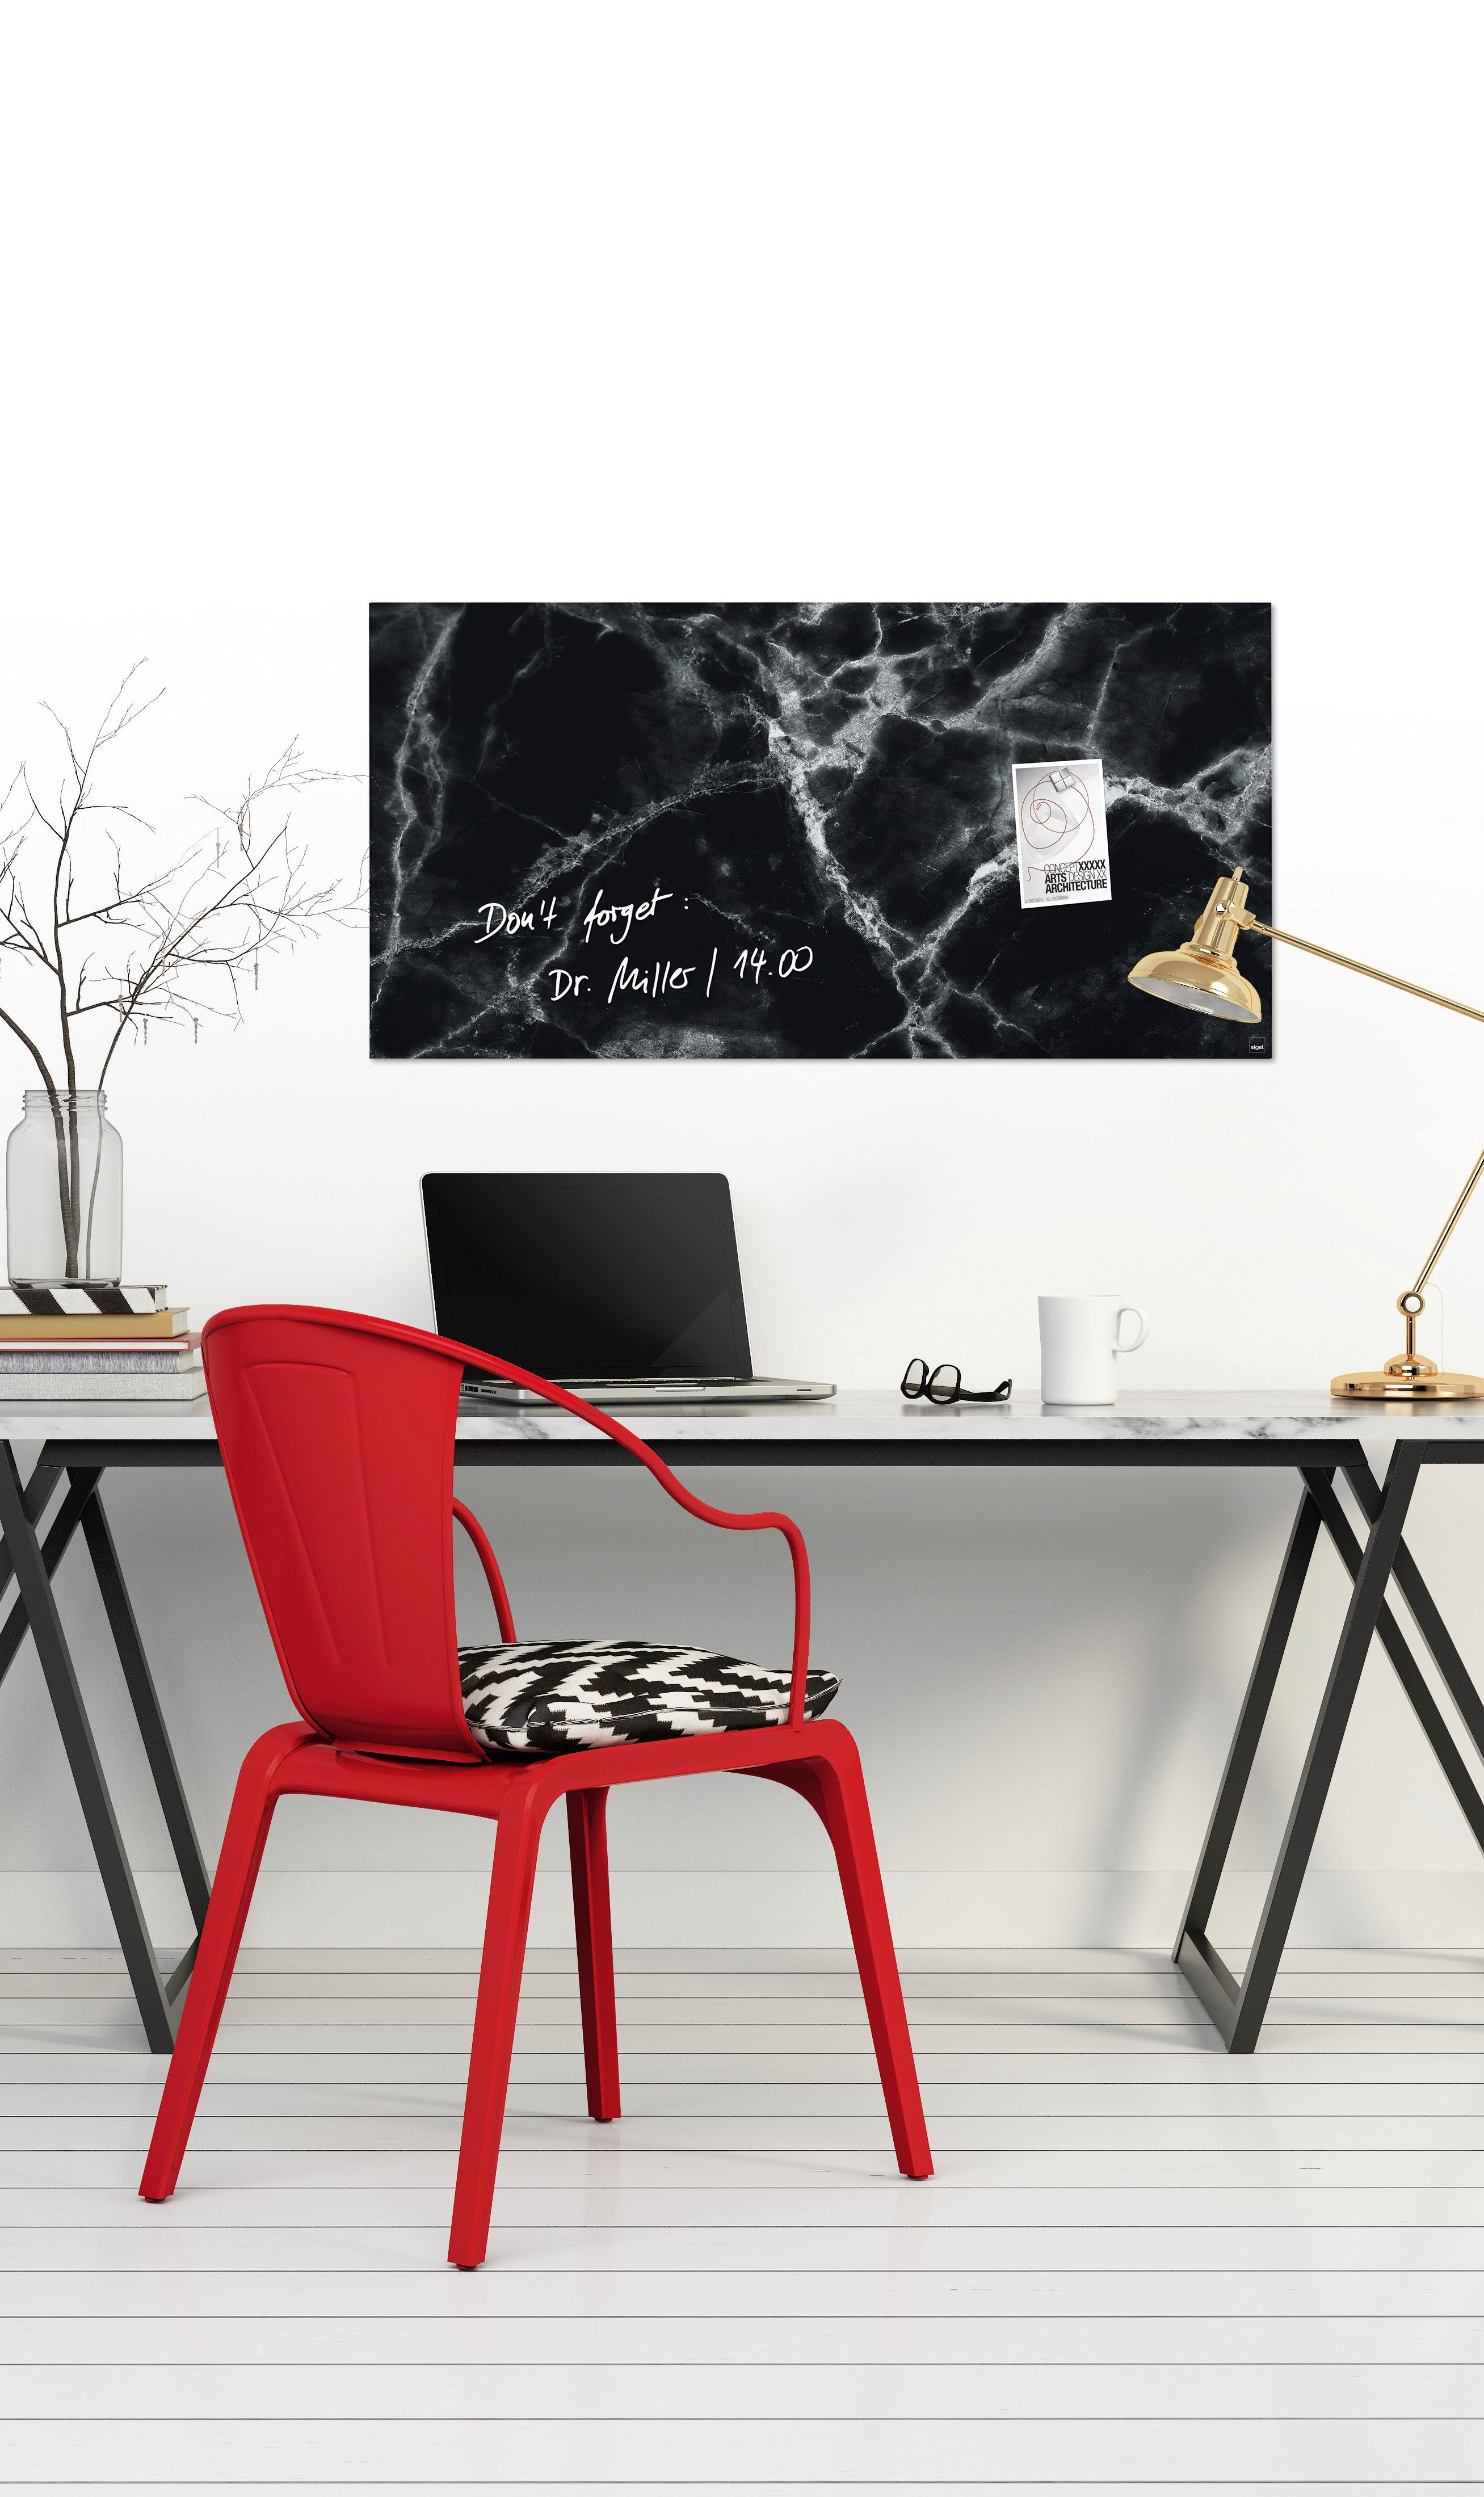 Modern home office desk with red chair. Black and grey